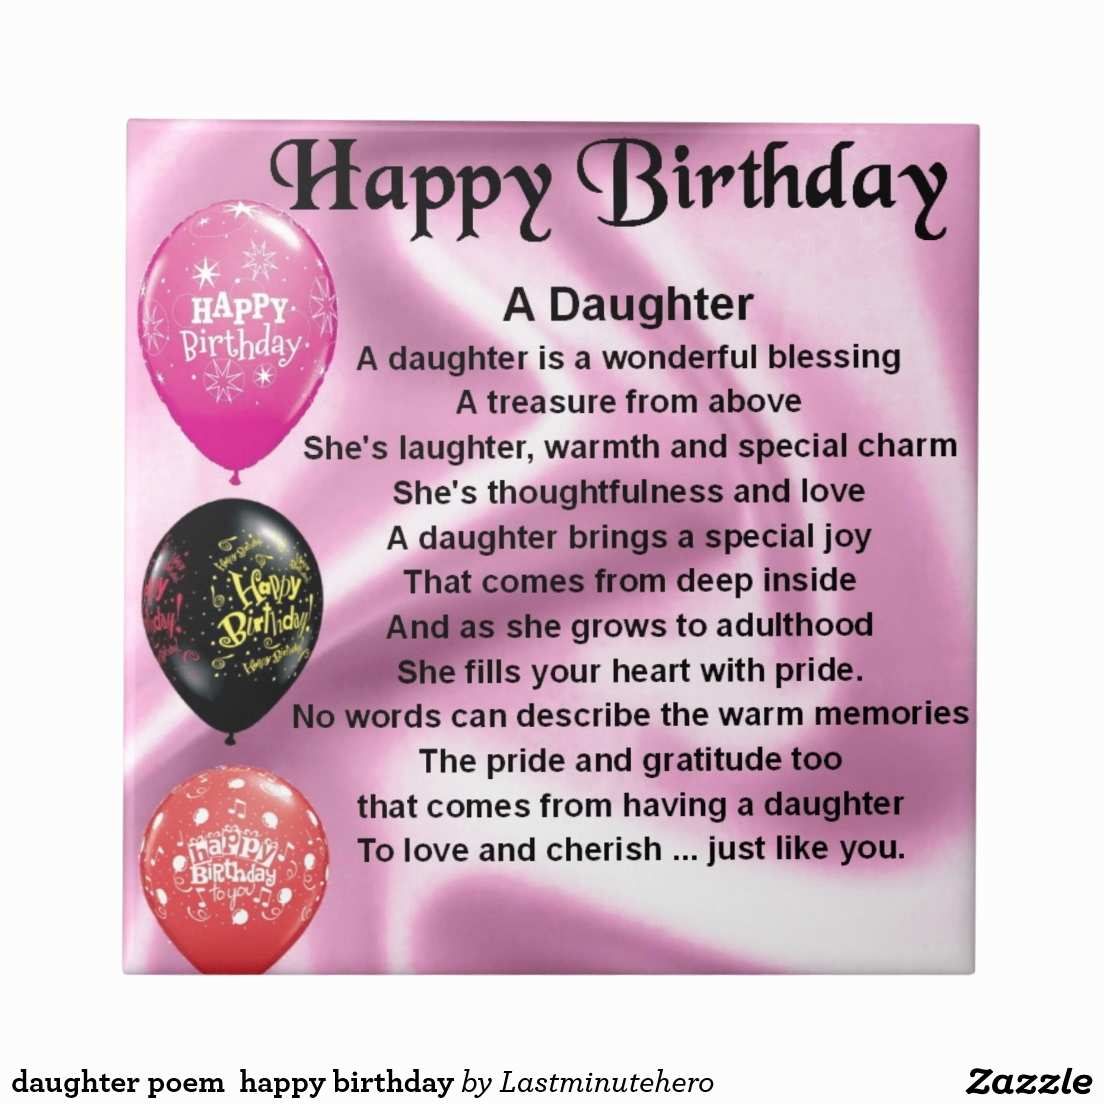 26th birthday wishes poem ; funny-birthday-wishes-for-sister-in-law-new-happy-birthday-wishes-for-mom-in-law-fresh-50-luxury-happy-birthday-of-funny-birthday-wishes-for-sister-in-law